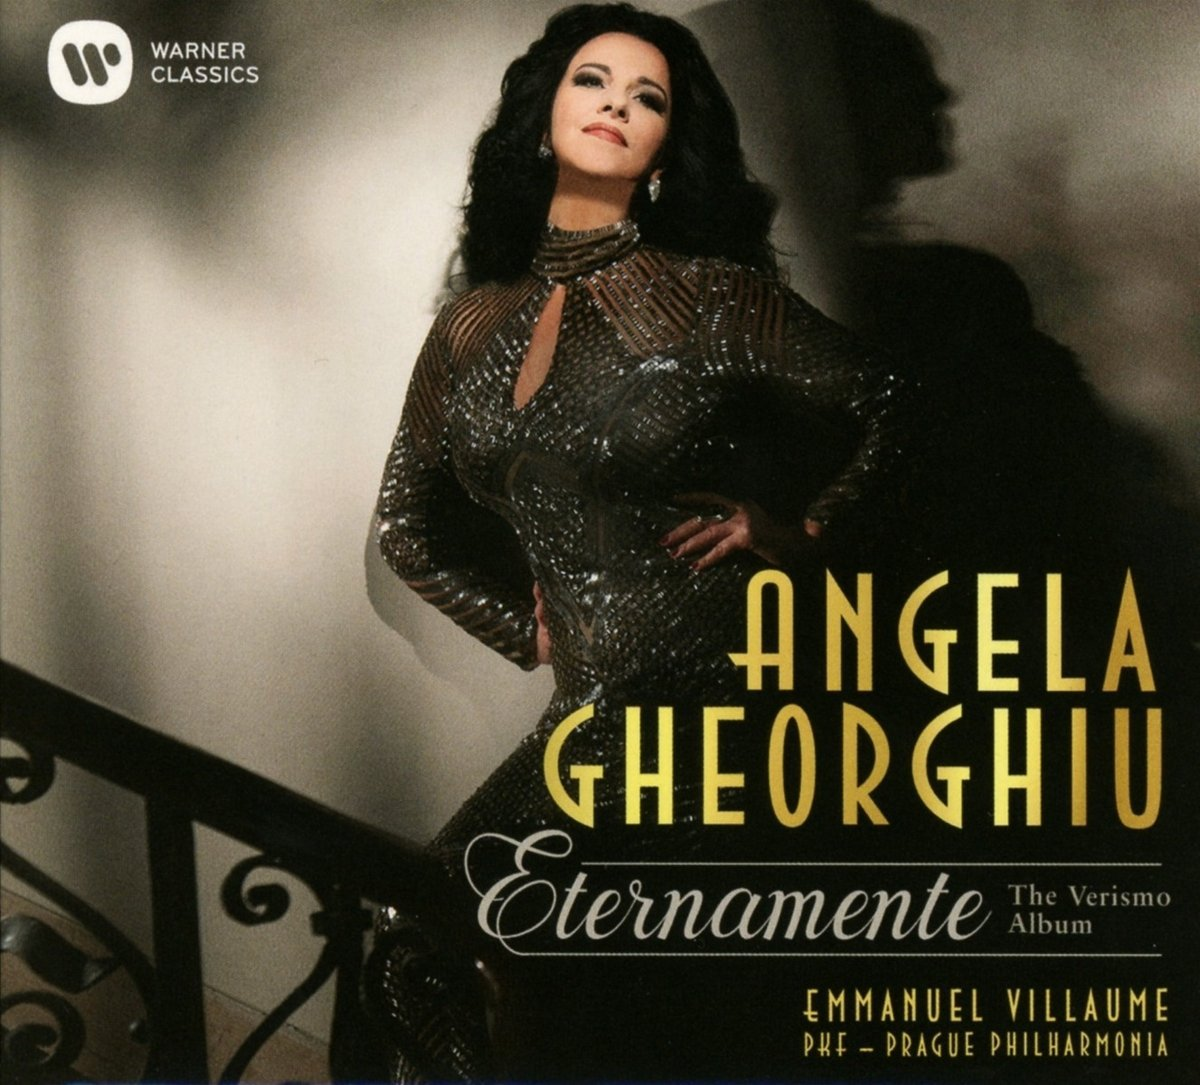 IN REVIEW: Angela Gheorghiu - ETERNAMENTE (Warner Classics 0190295780241)